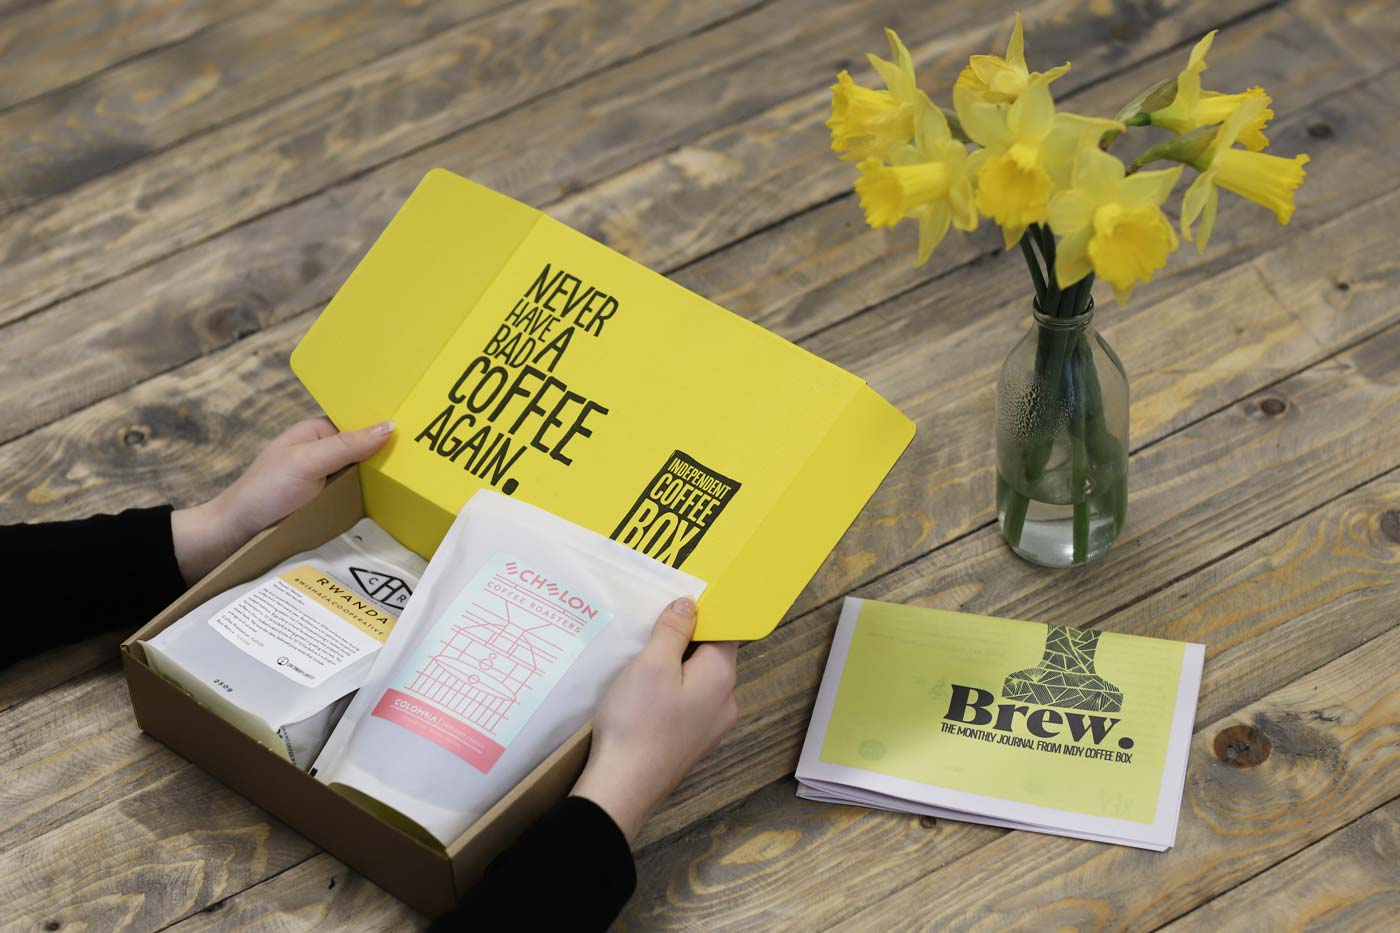 £14.99 & up – Coffee box delivery inc P&P, up to 24% off